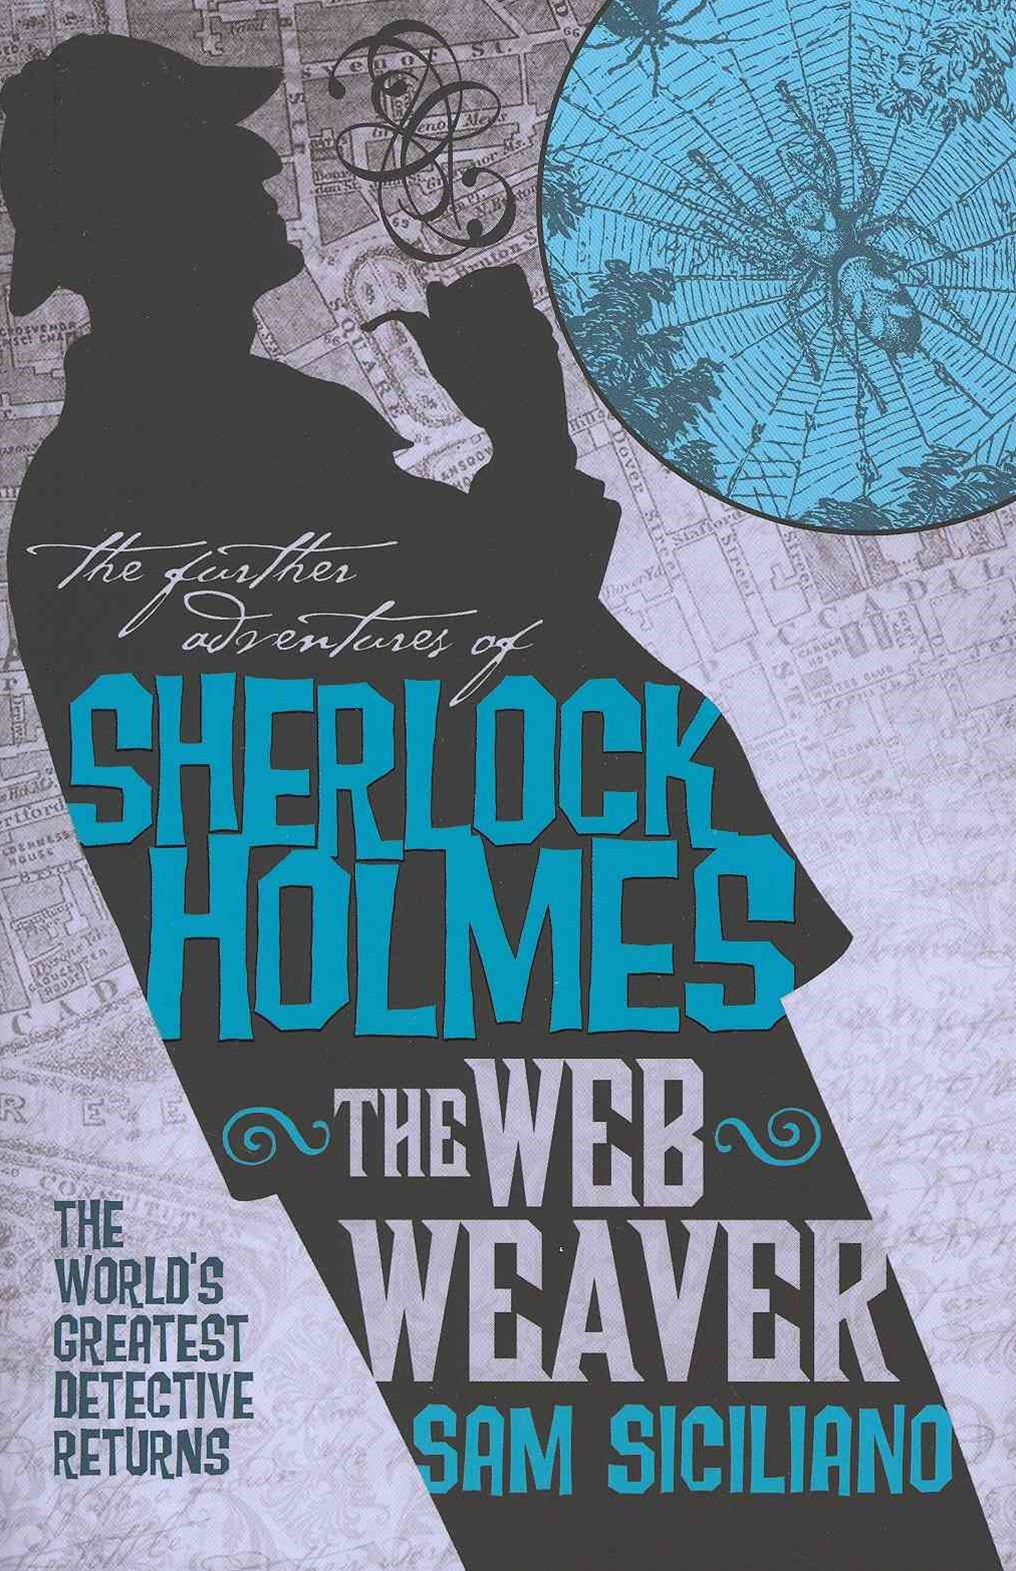 Further Adv S. Holmes, The Web Weaver